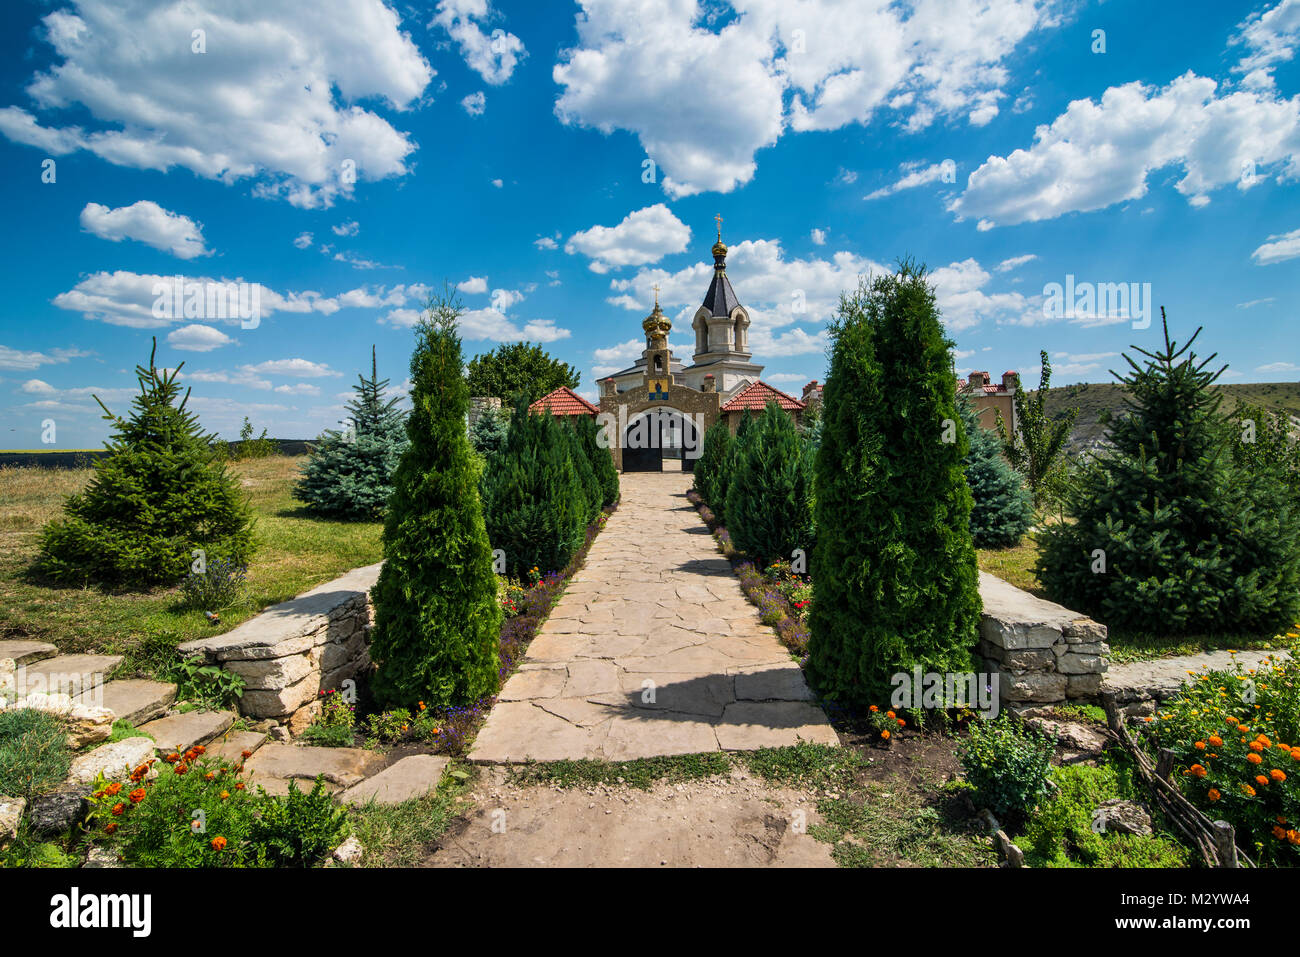 the old temple complex of  old Orhei or Orheiul Vechi,  Moldova, Eastern Europe - Stock Image